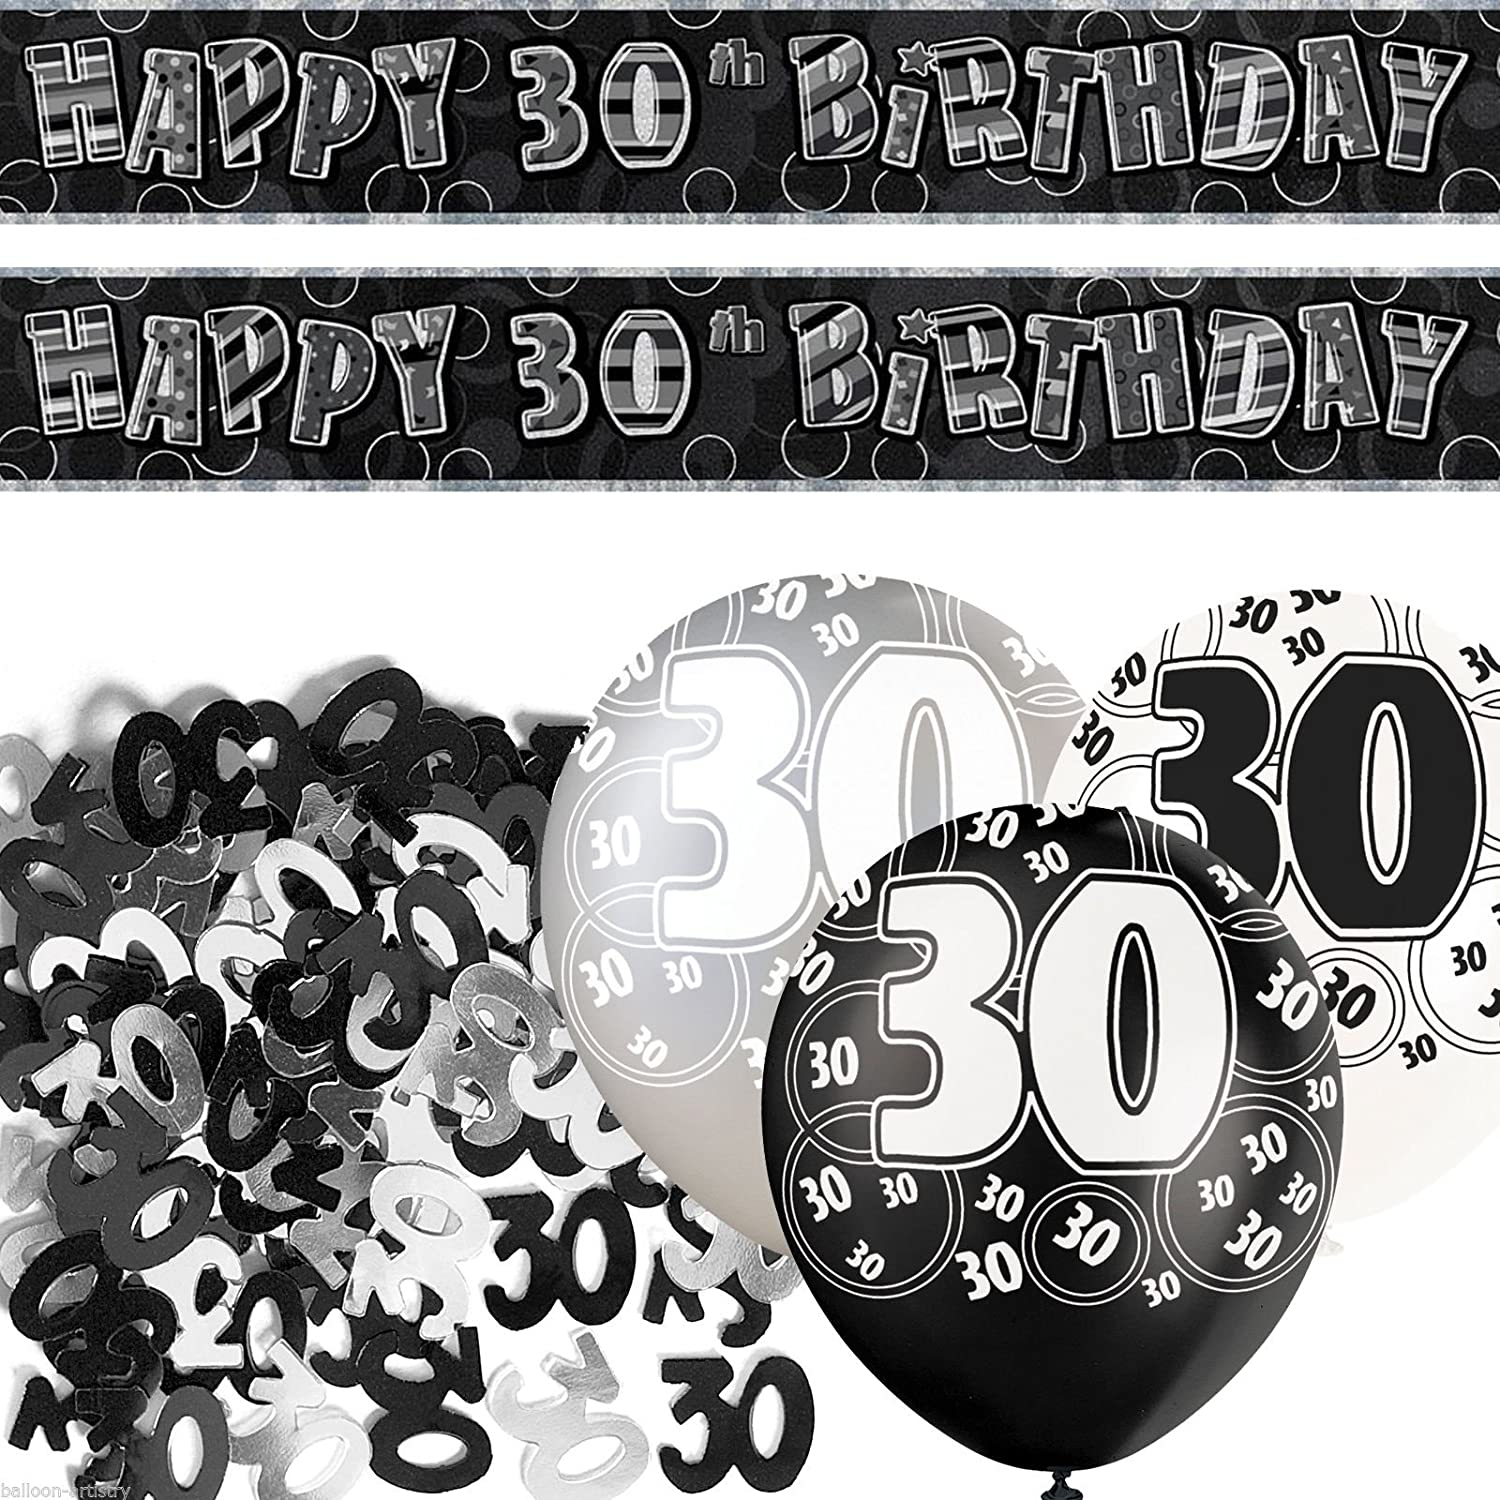 GLITZ BLACK AGE 13 CONFETTI HAPPY BIRTHDAY PARTY TABLEWARE DECOR HOLOGRAPHIC